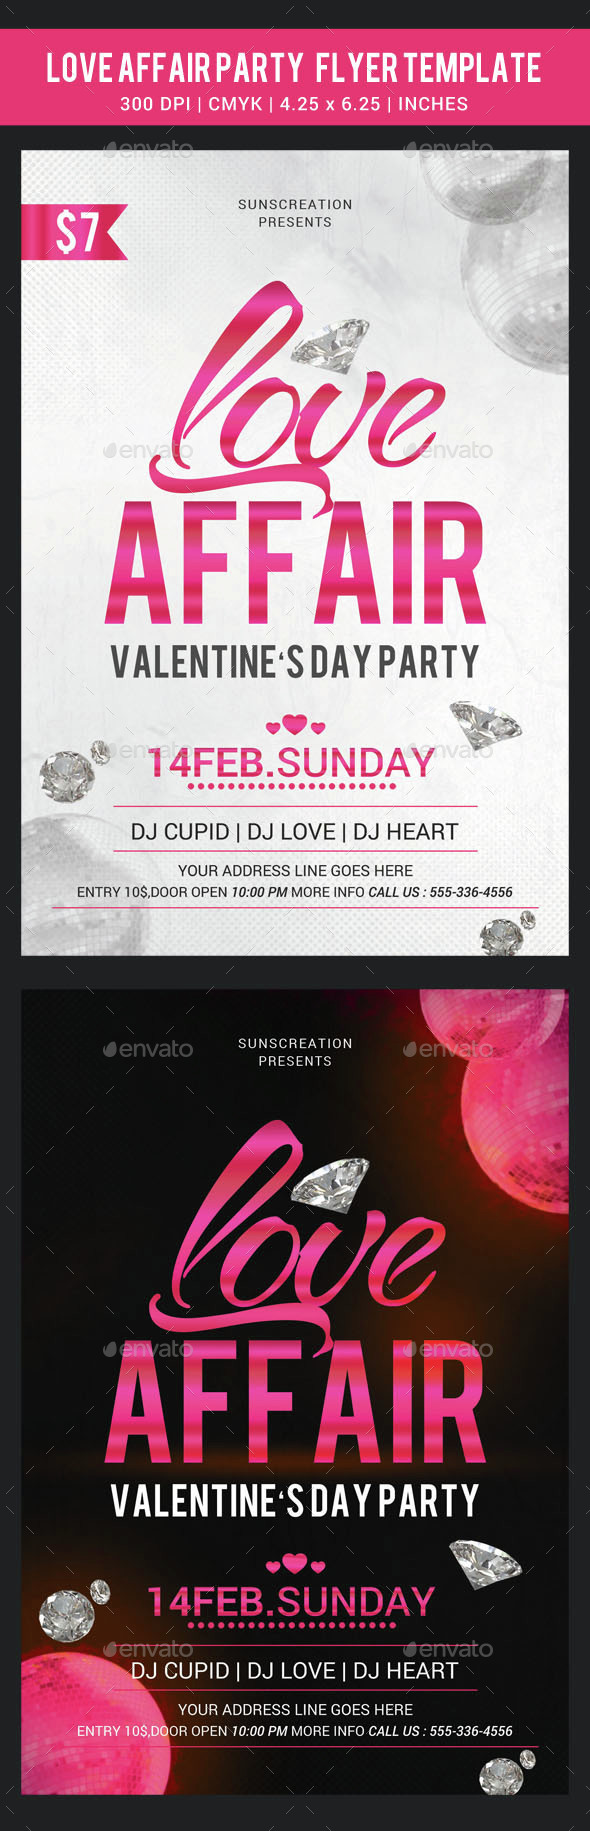 Love Affair Party Flyer Template - Clubs & Parties Events